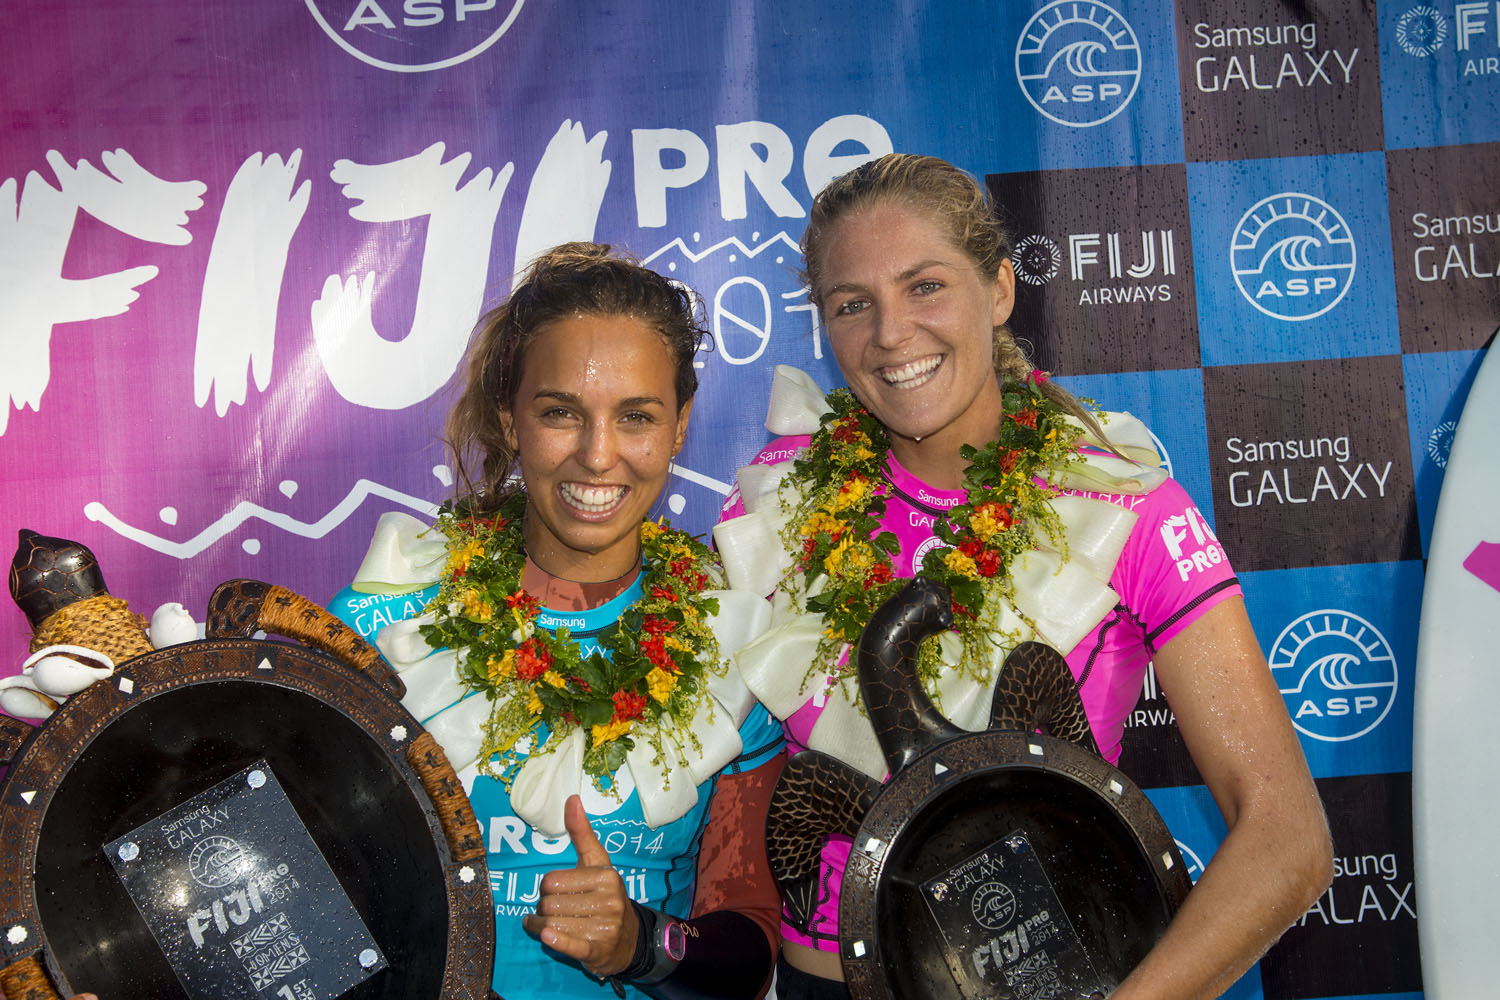 Sally Fitzgibbons (L) stands with runner-up Stephanie Gilmore (R) during the trophy ceremony in Tavarua, Fiji.